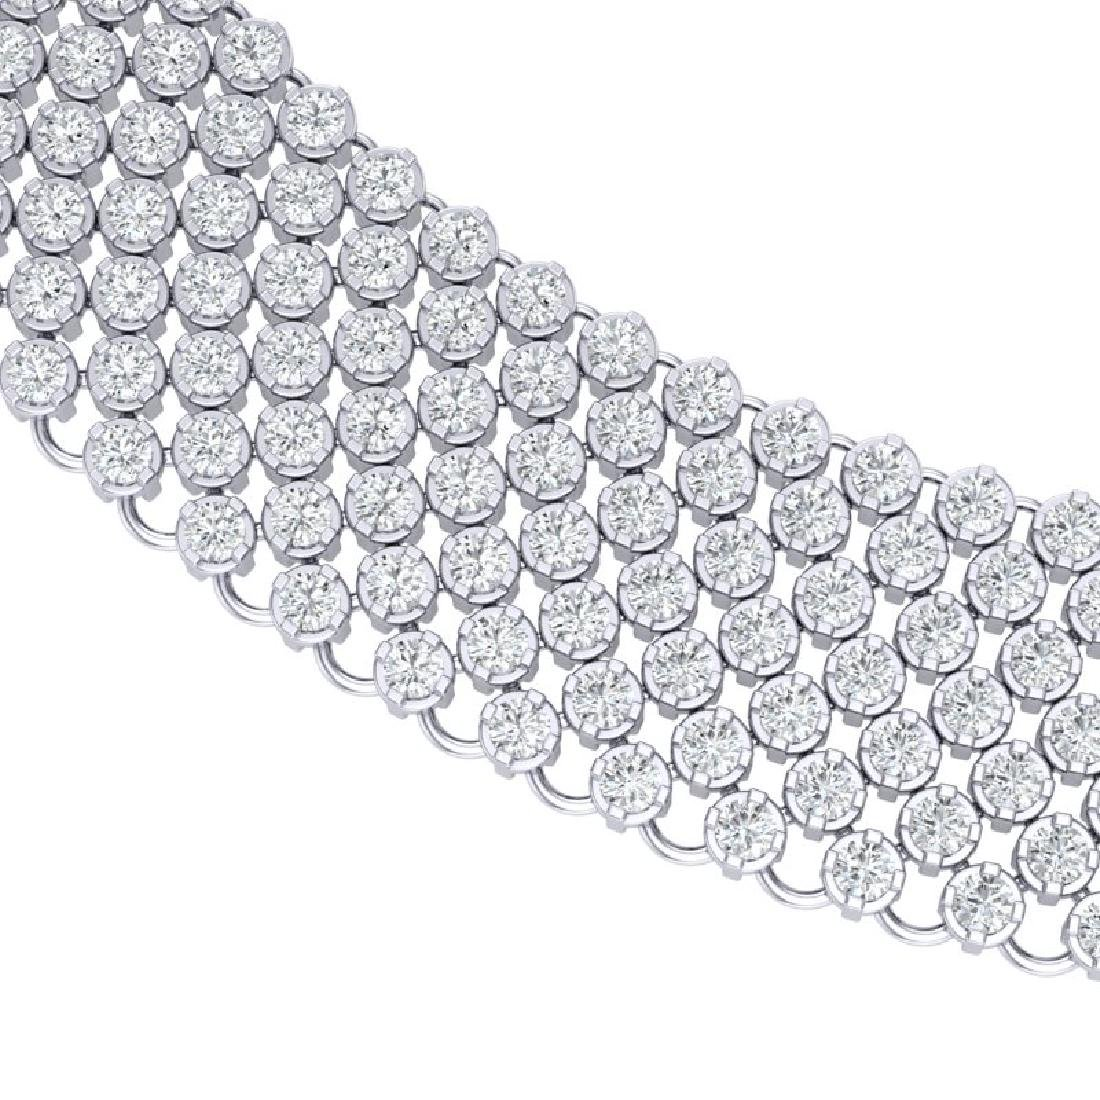 35 CTW Certified VS/SI Diamond Necklace 18K White Gold